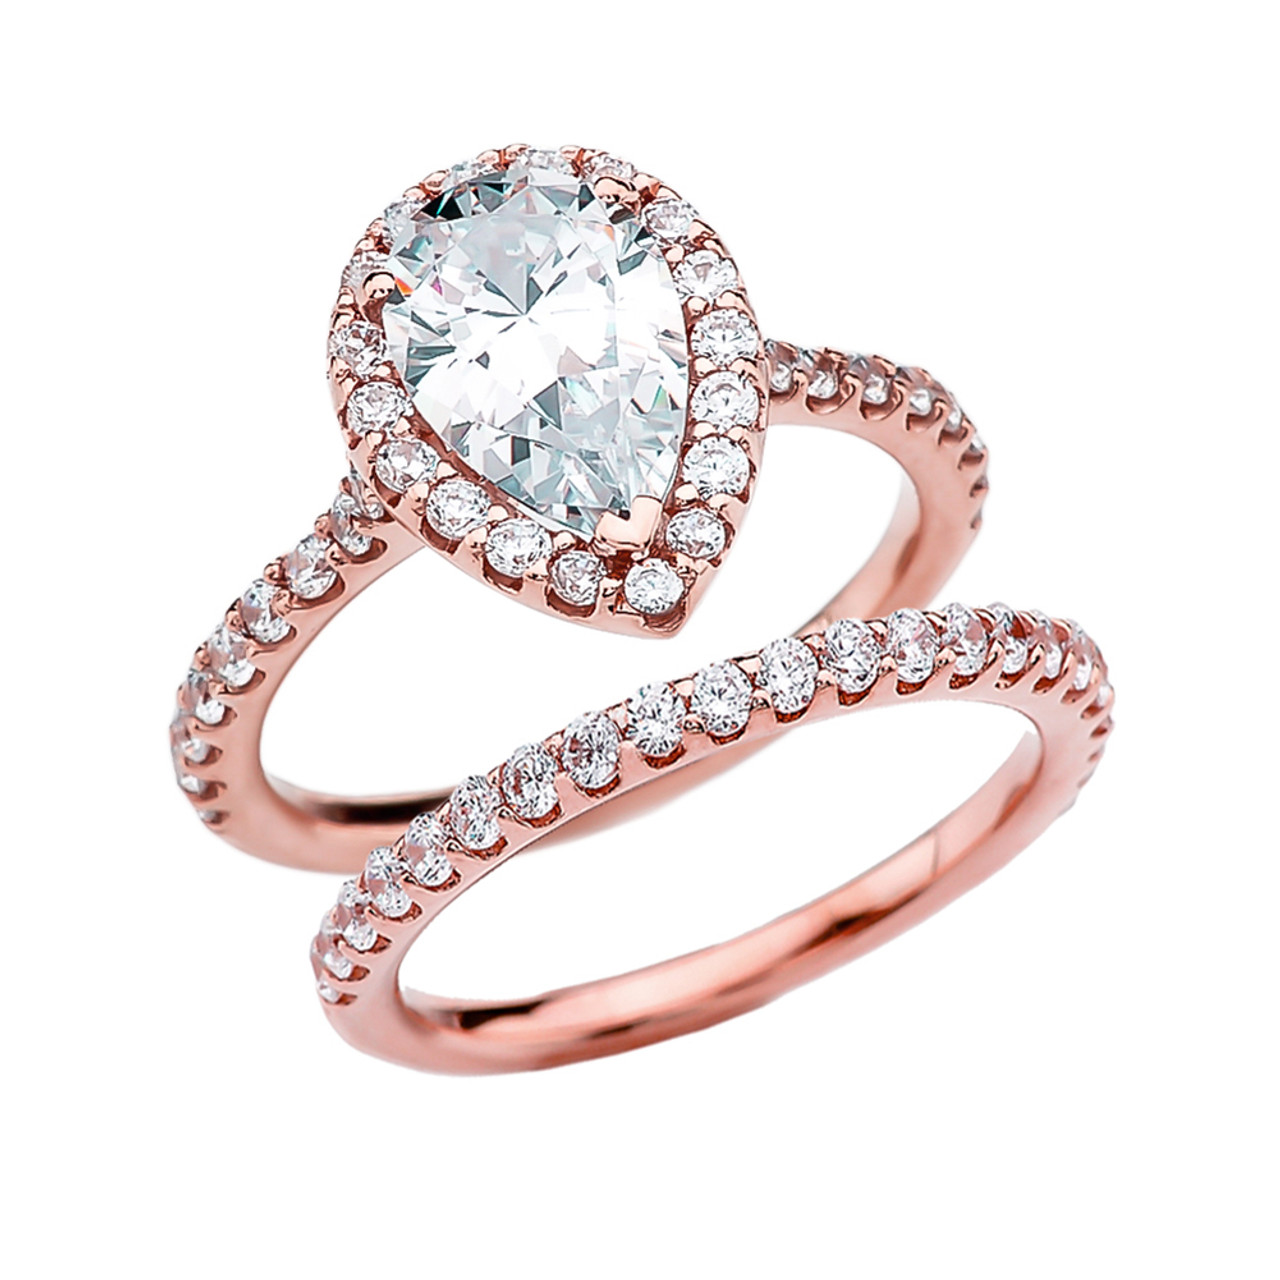 Rose Gold Wedding Ring.Pear Shape Solitaire Elegant Rose Gold Cubic Zirconia Engagement Wedding Ring Set